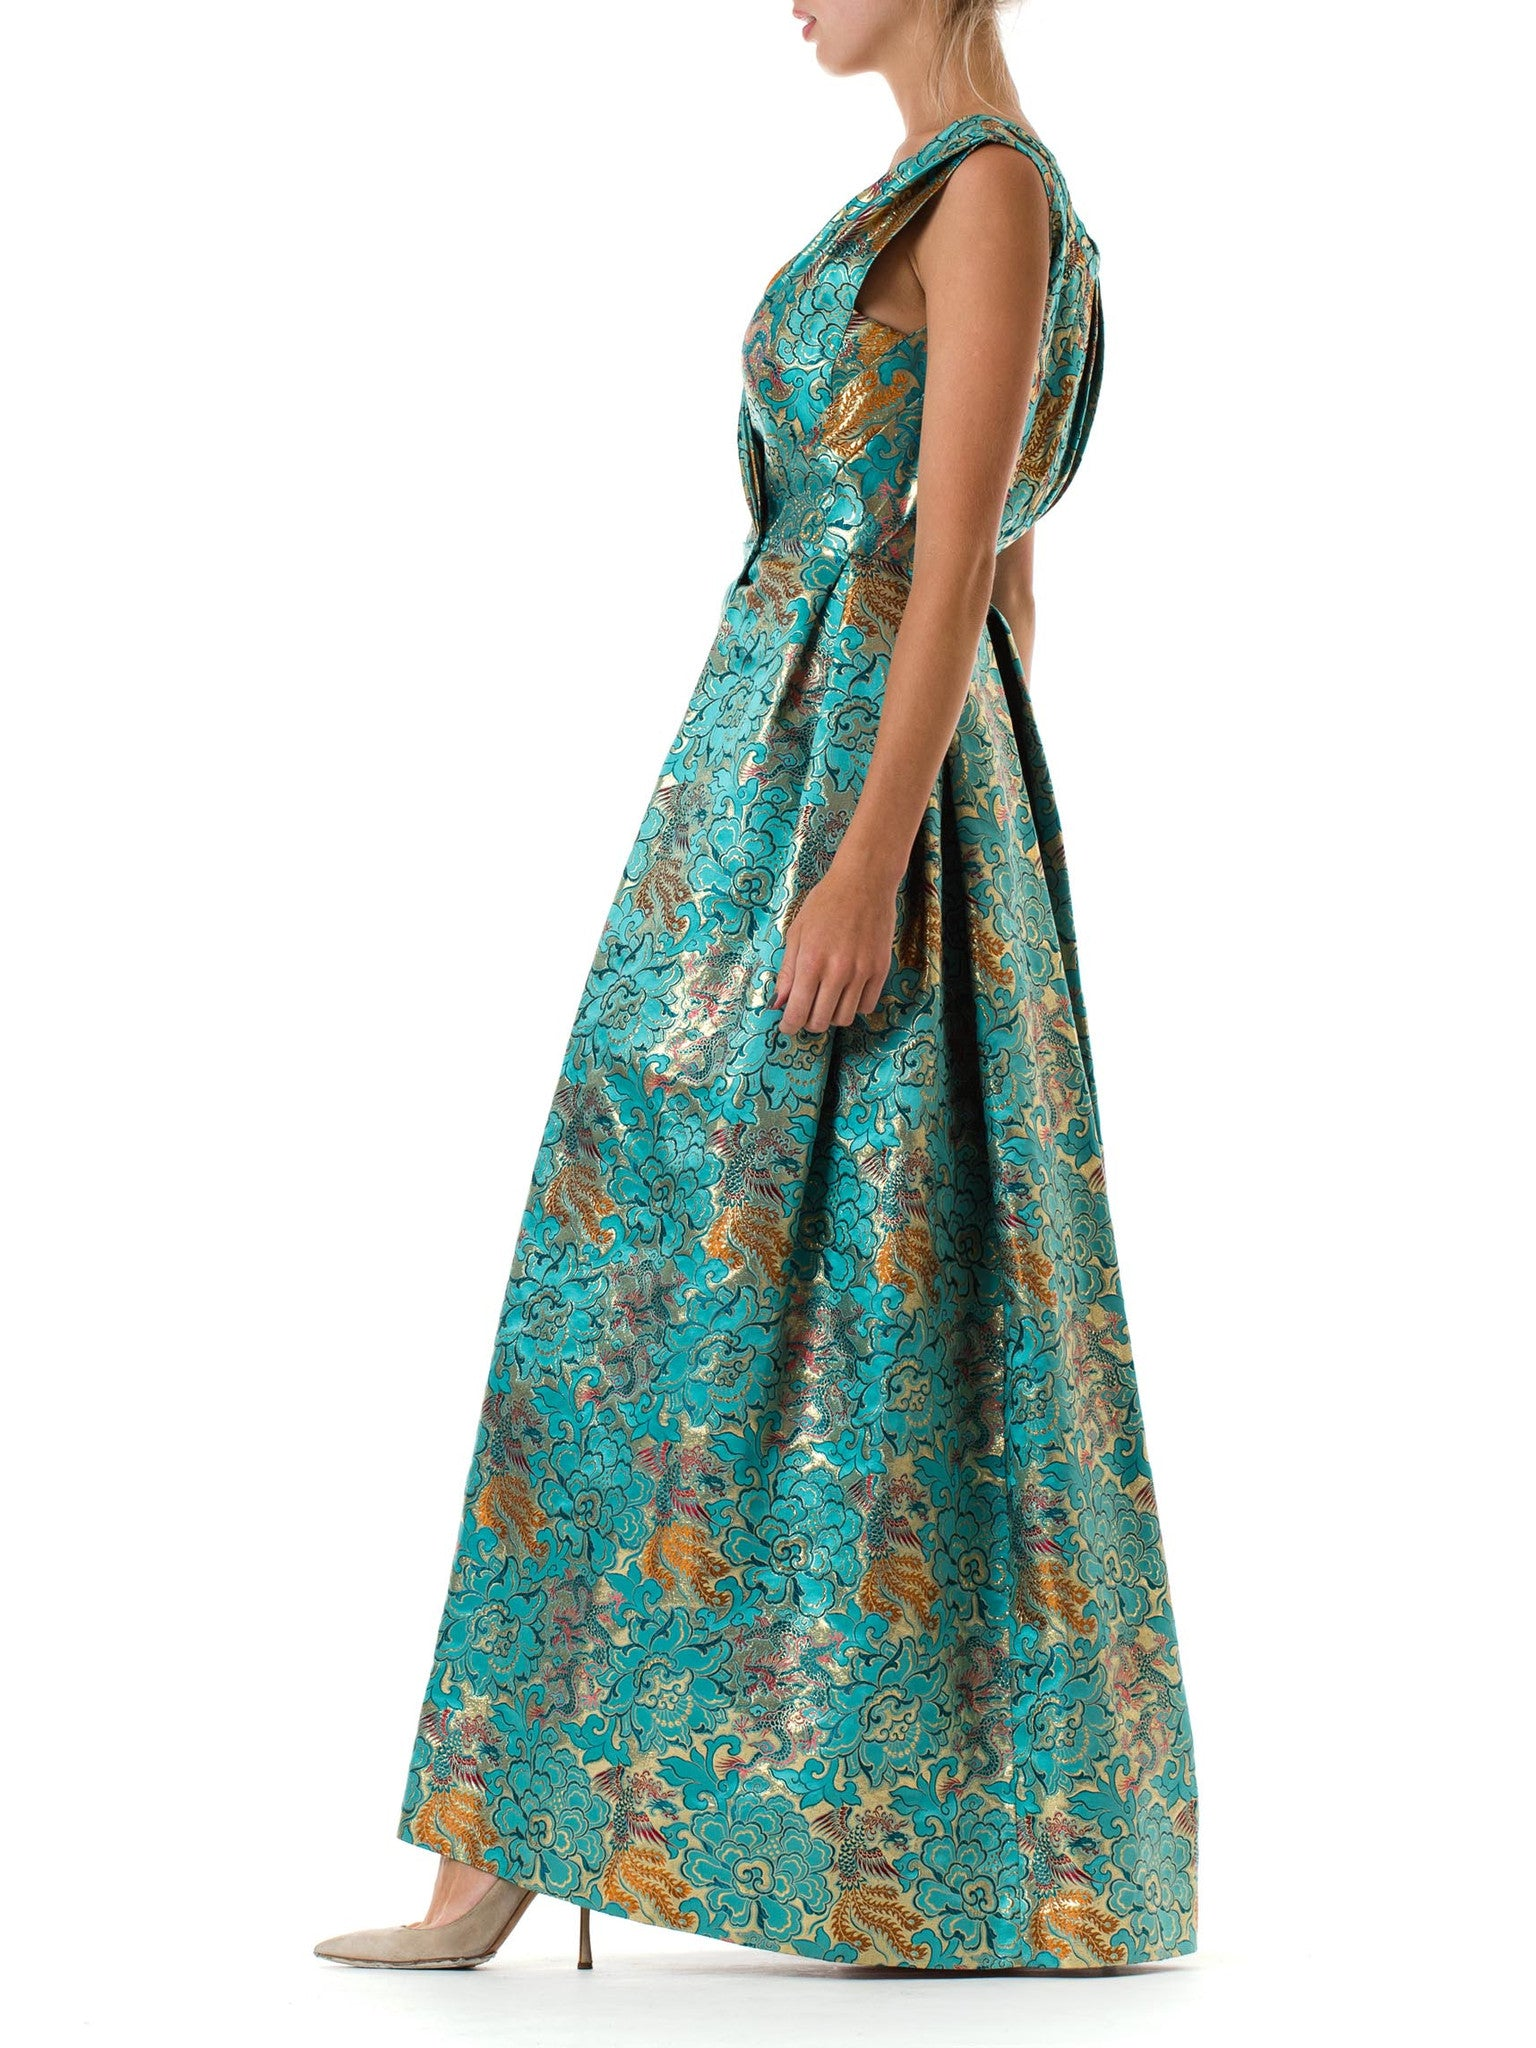 Morphew Collection Teal & Gold Asian Dragon And Phoenix Jacquard Reversible Gown Made Of 1960S Silk Lamé Fabric